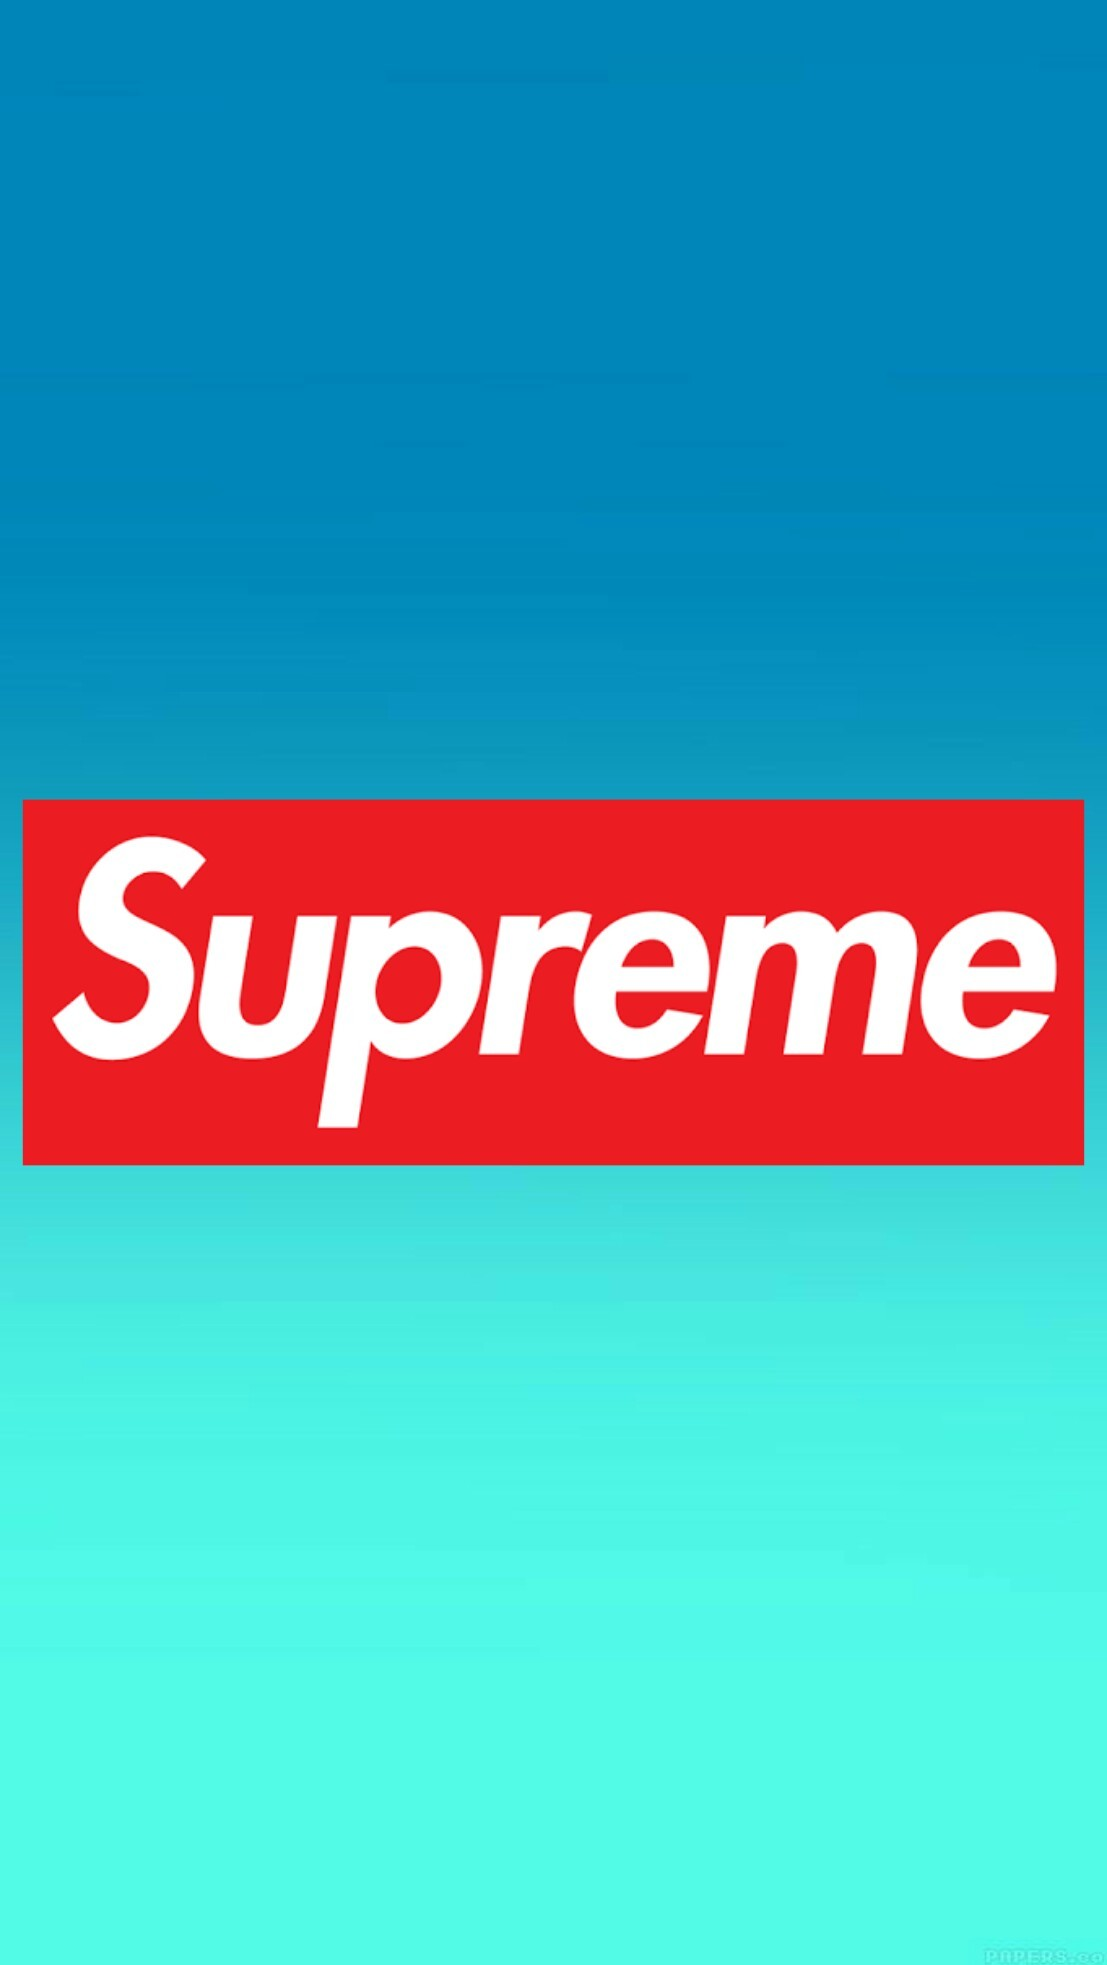 Supreme Wallpaper 73 images [1107x1965